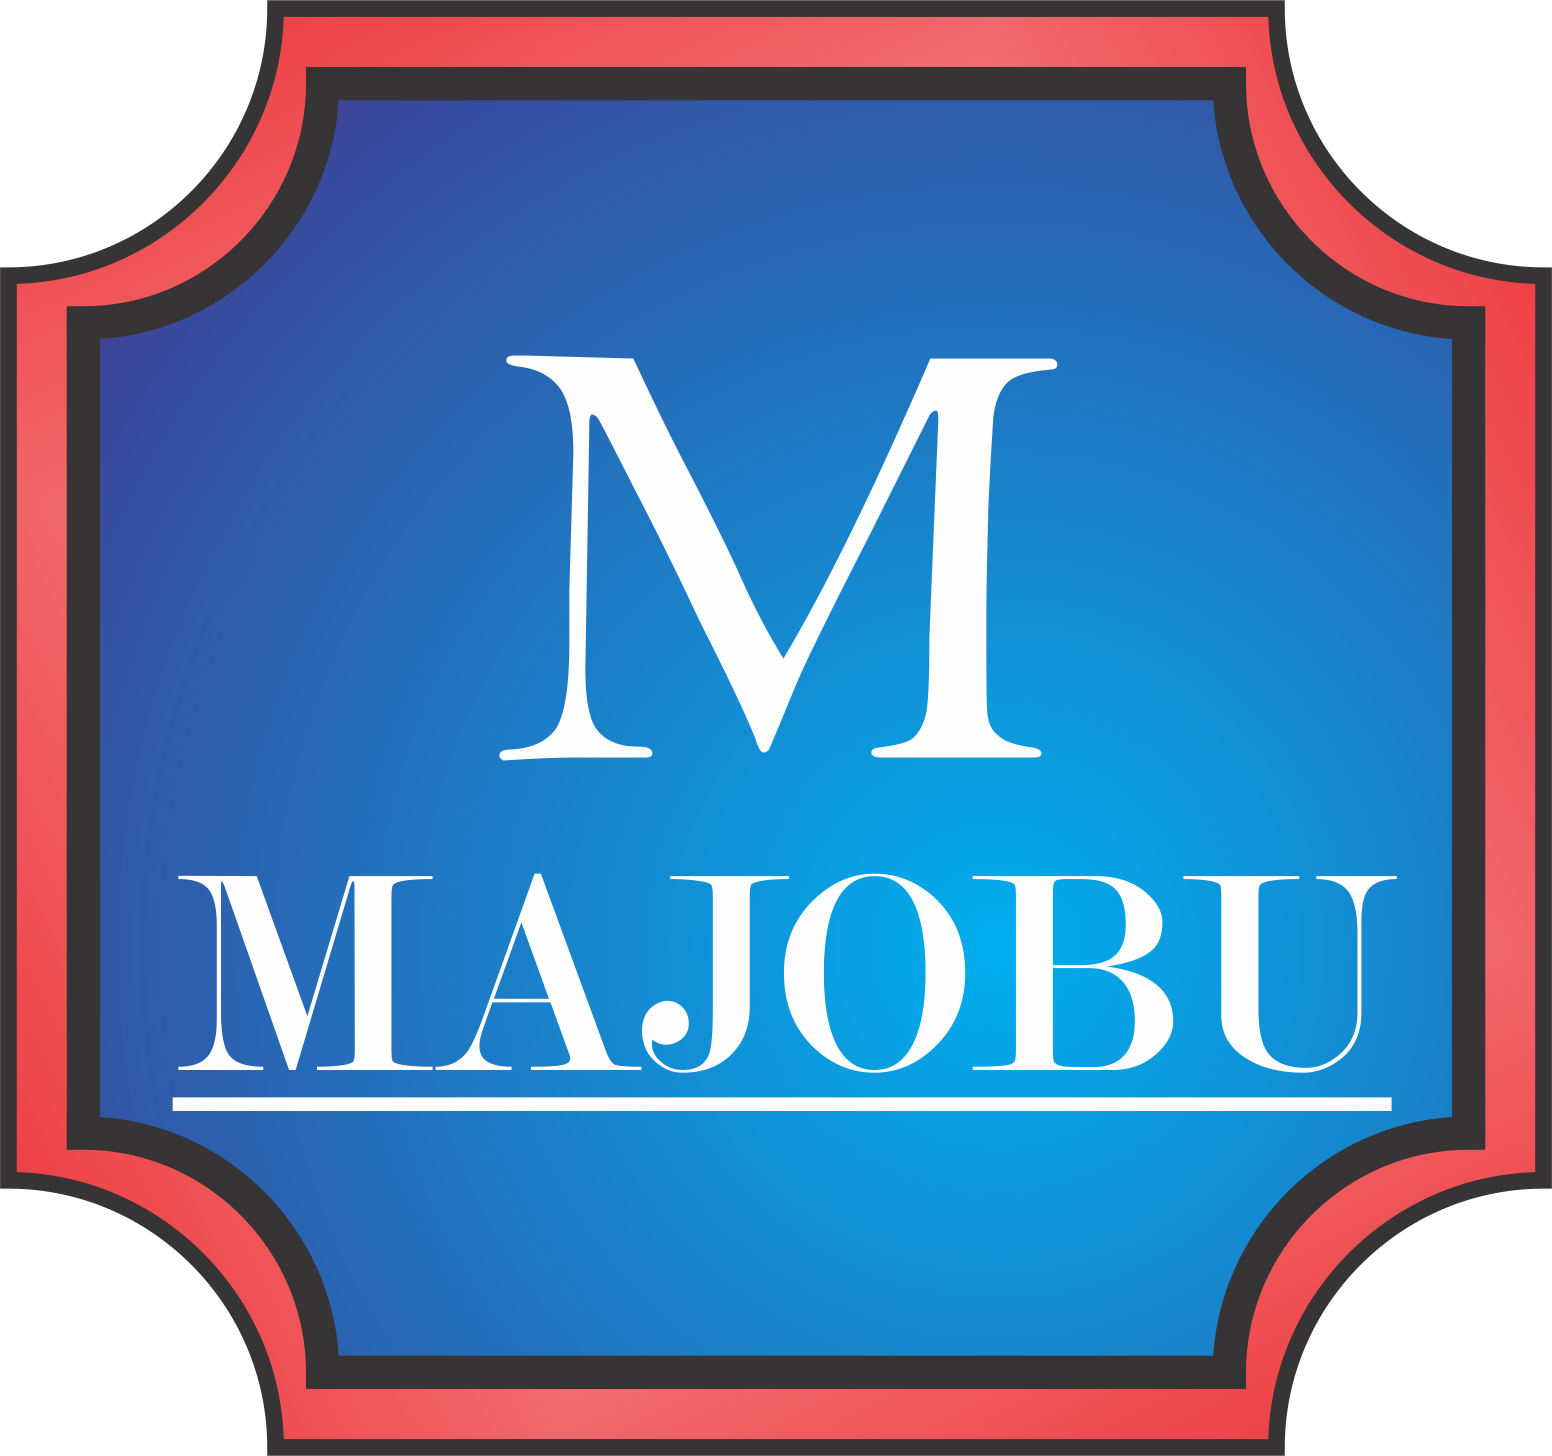 Logo Design by Romie Everwill - Entry No. 47 in the Logo Design Contest Inspiring Logo Design for Majobu.